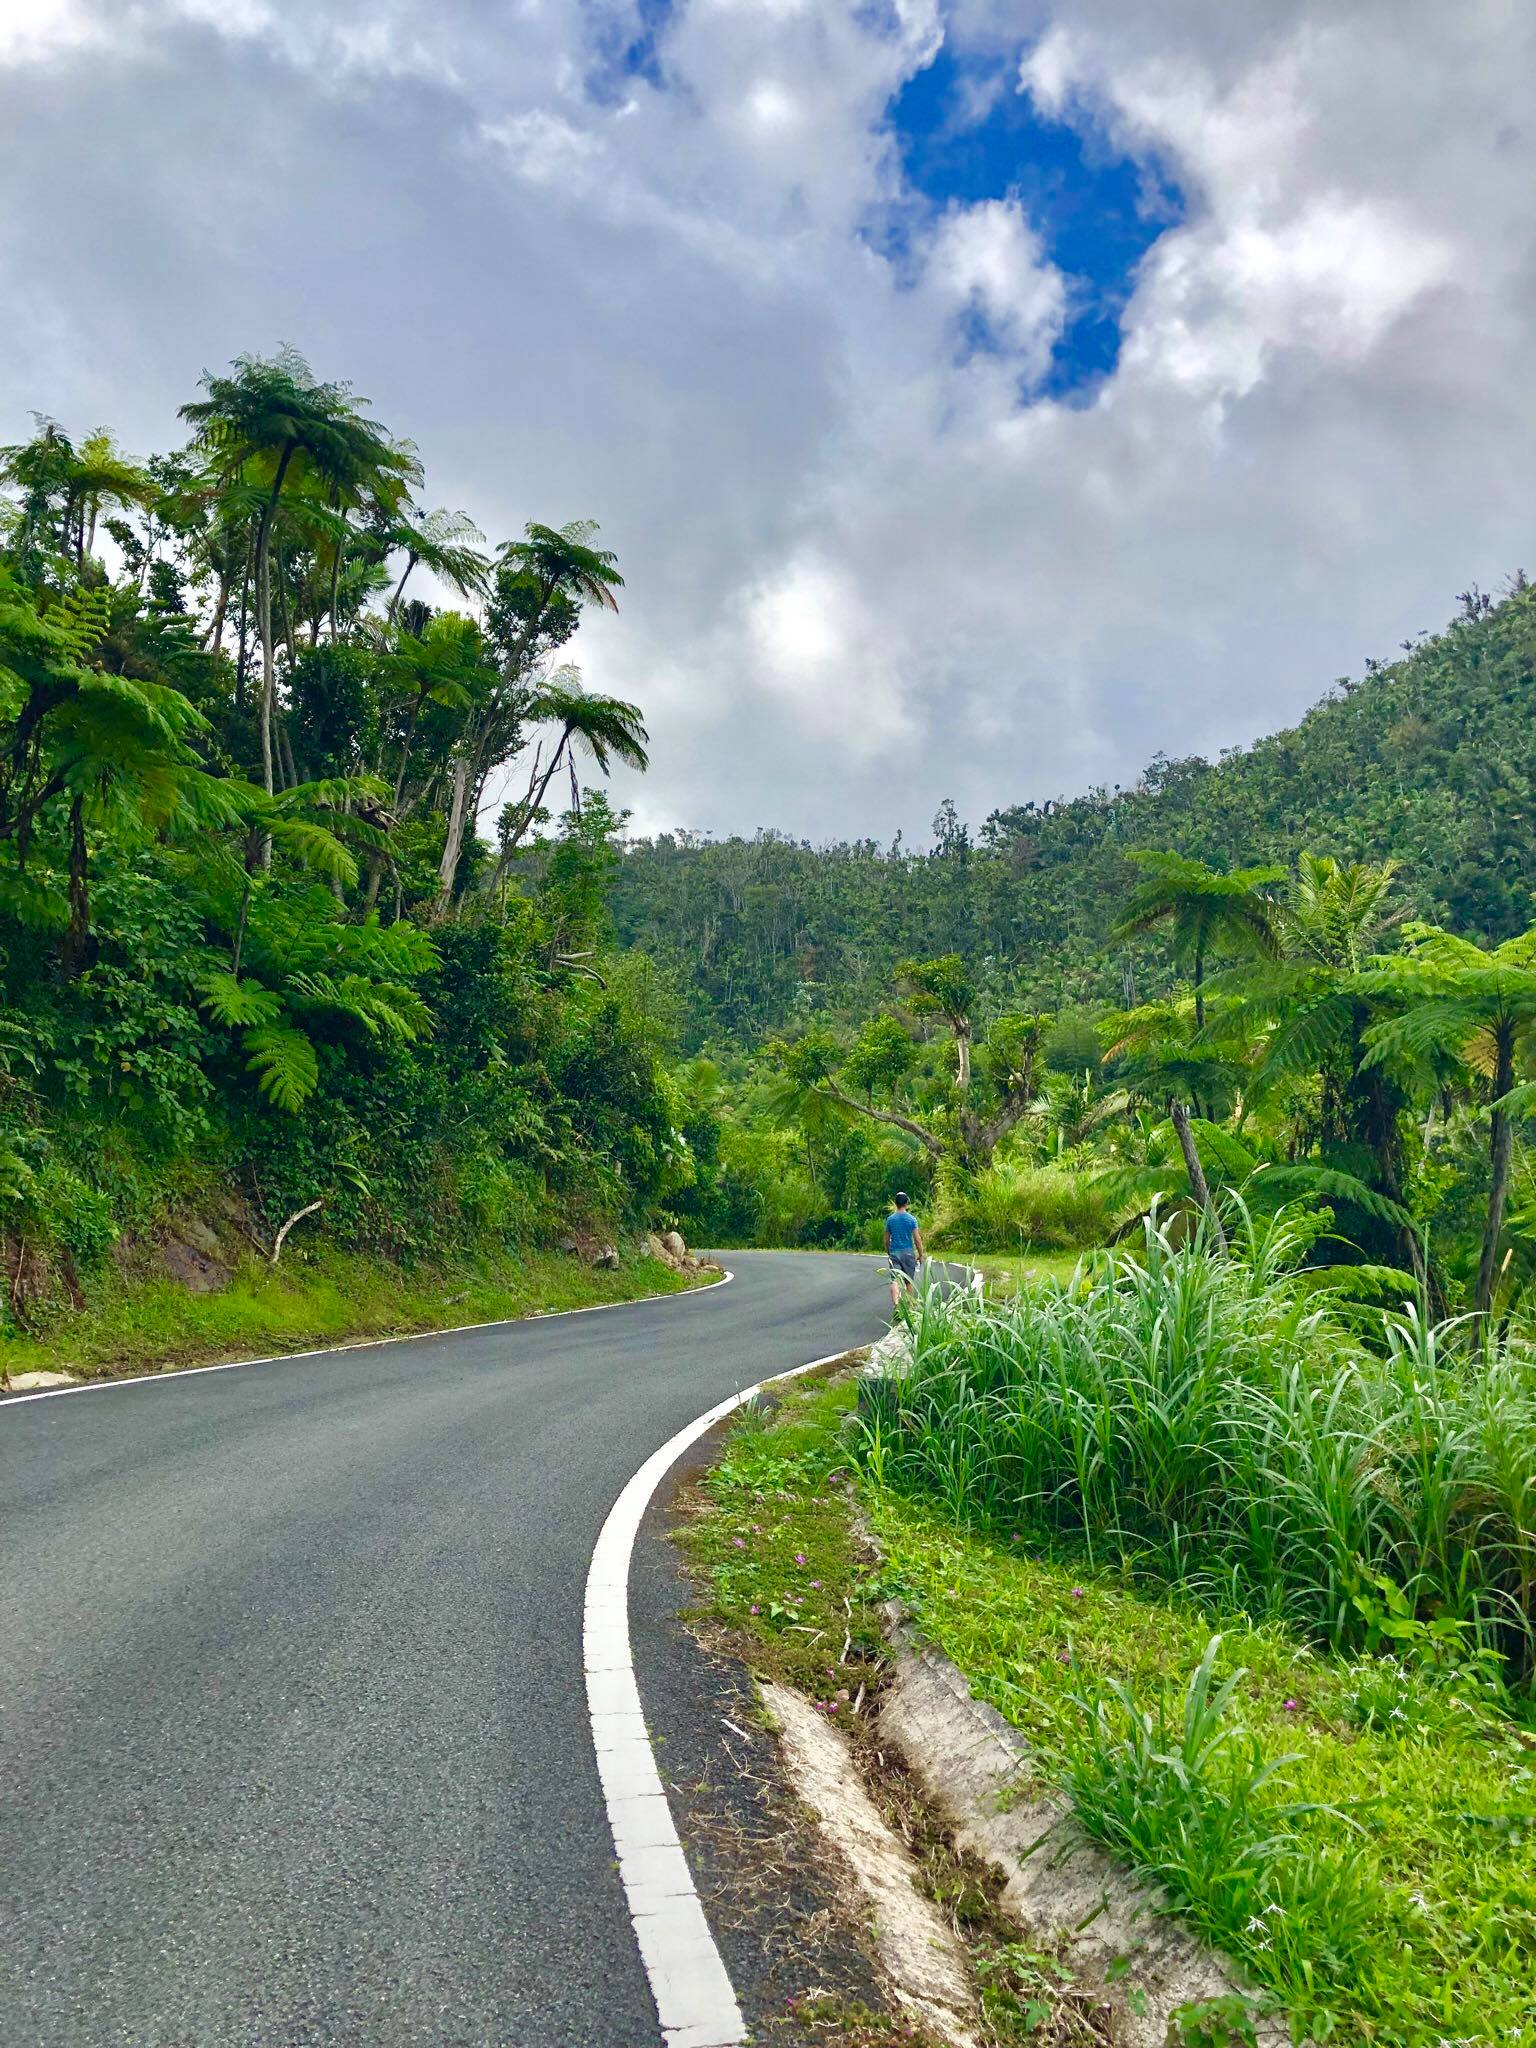 Life On The Road Day 10 Another day hiking in El Yunque National Forest and Eating BBQ at the malecon in Naguabo Promenade2.jpg